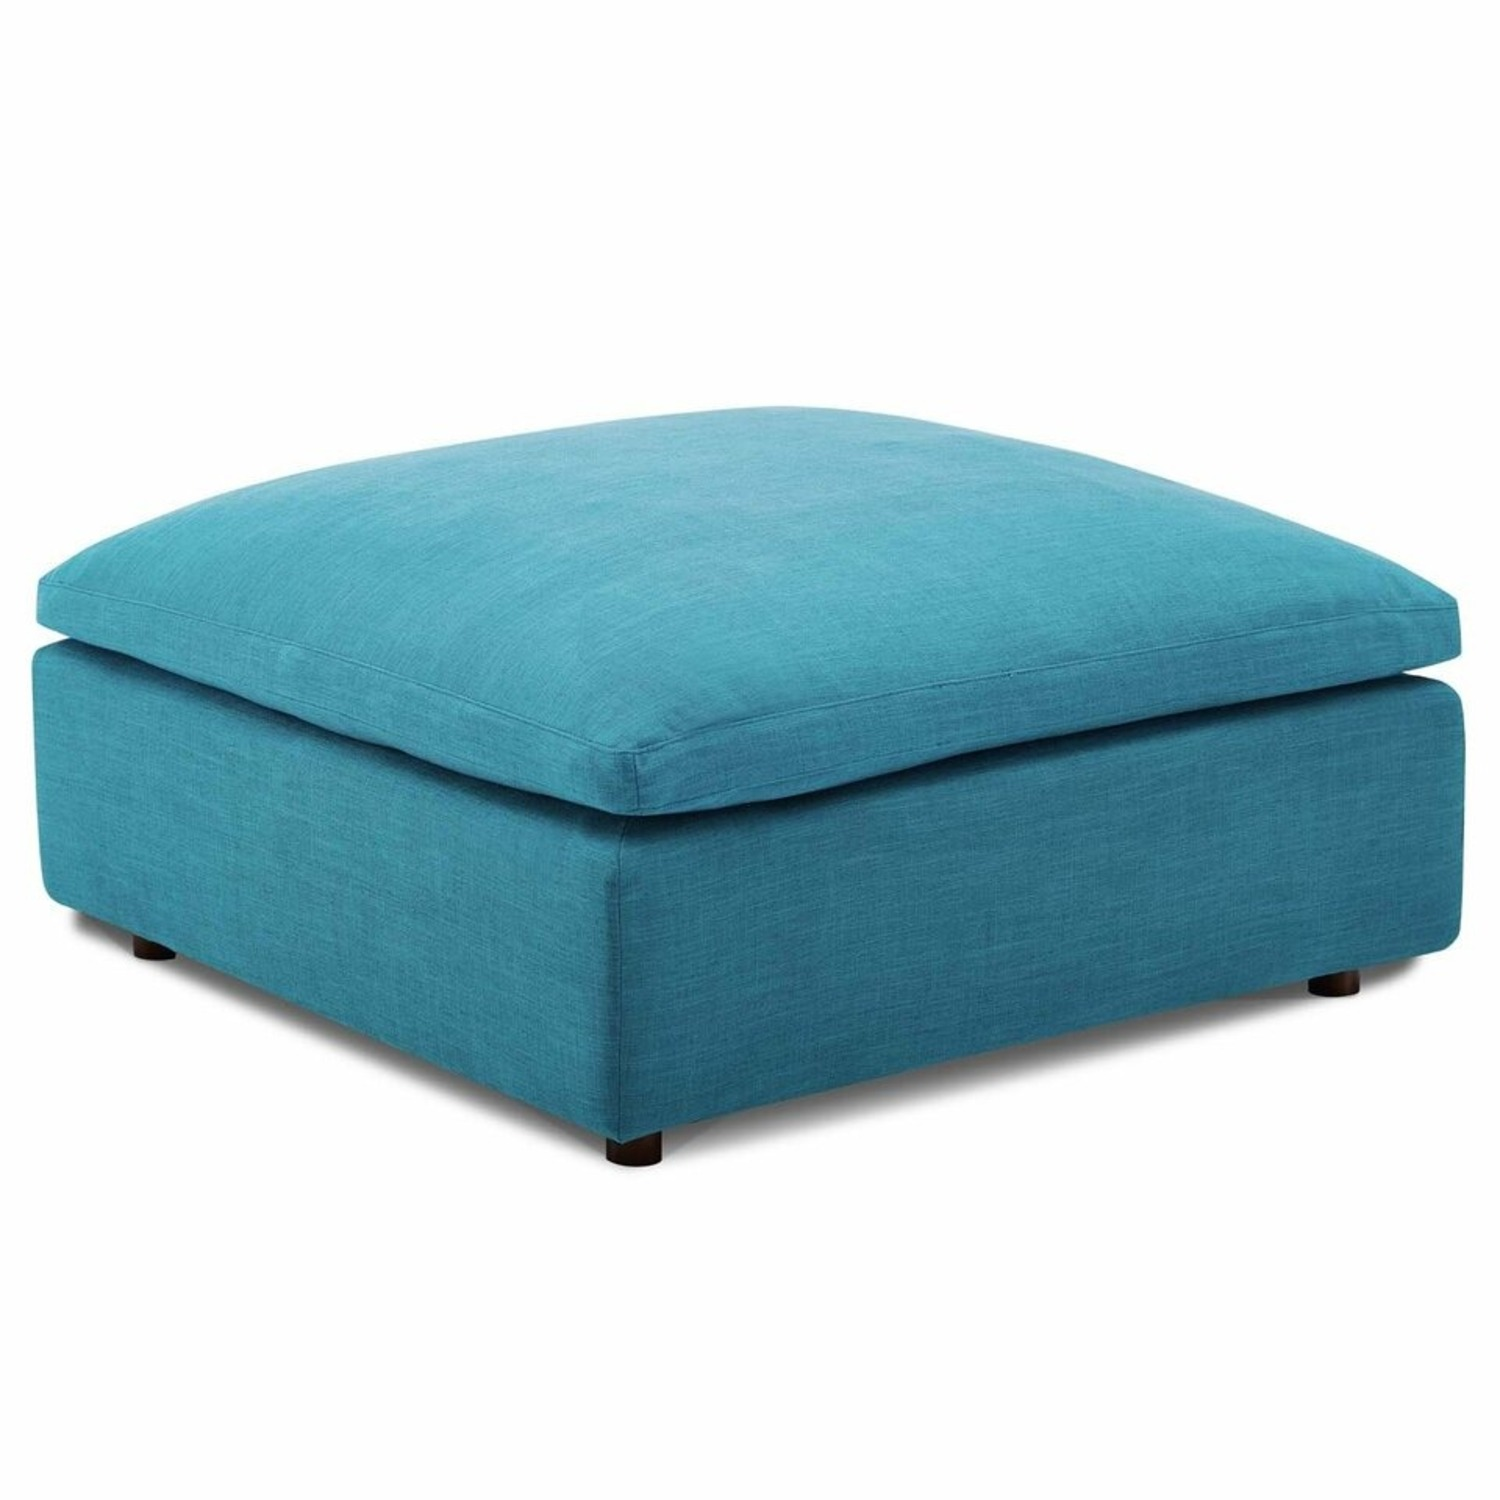 4-Piece Sectional In Teal Polyester & Linen Fabric - image-7